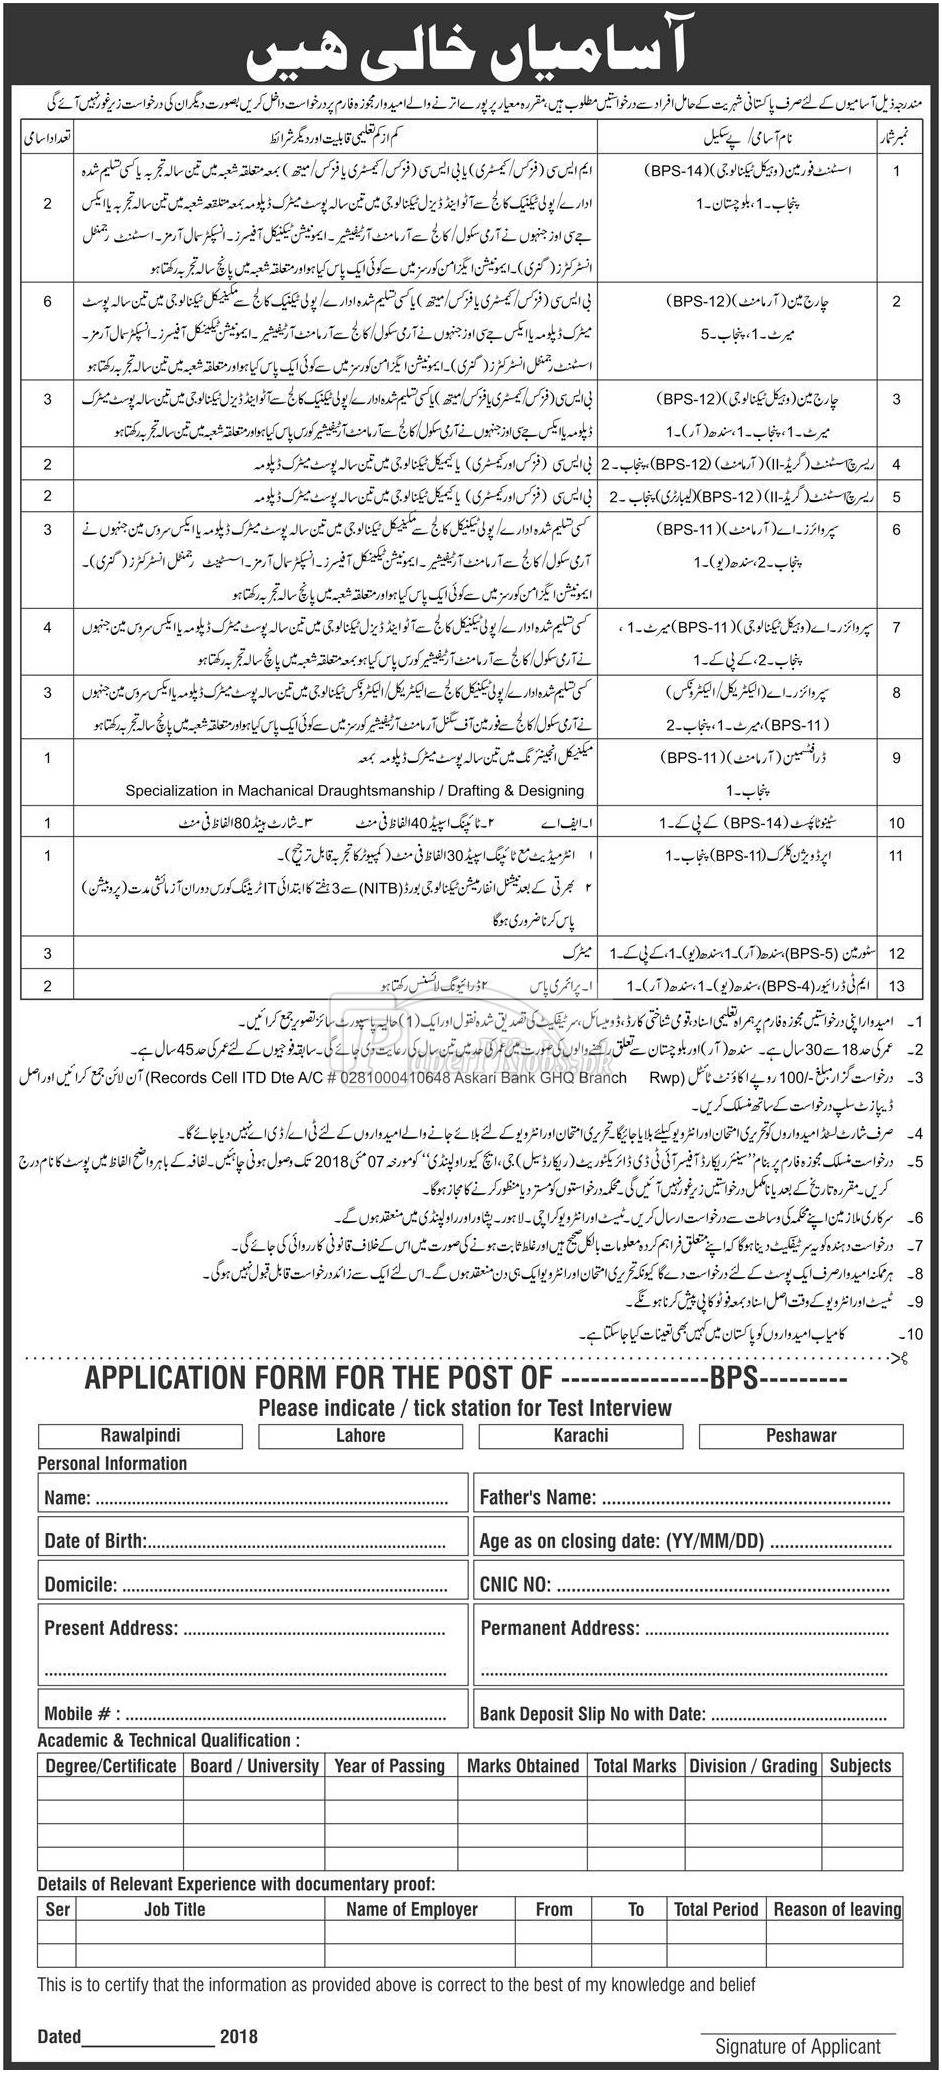 GHQ Rawalpindi Jobs 2018